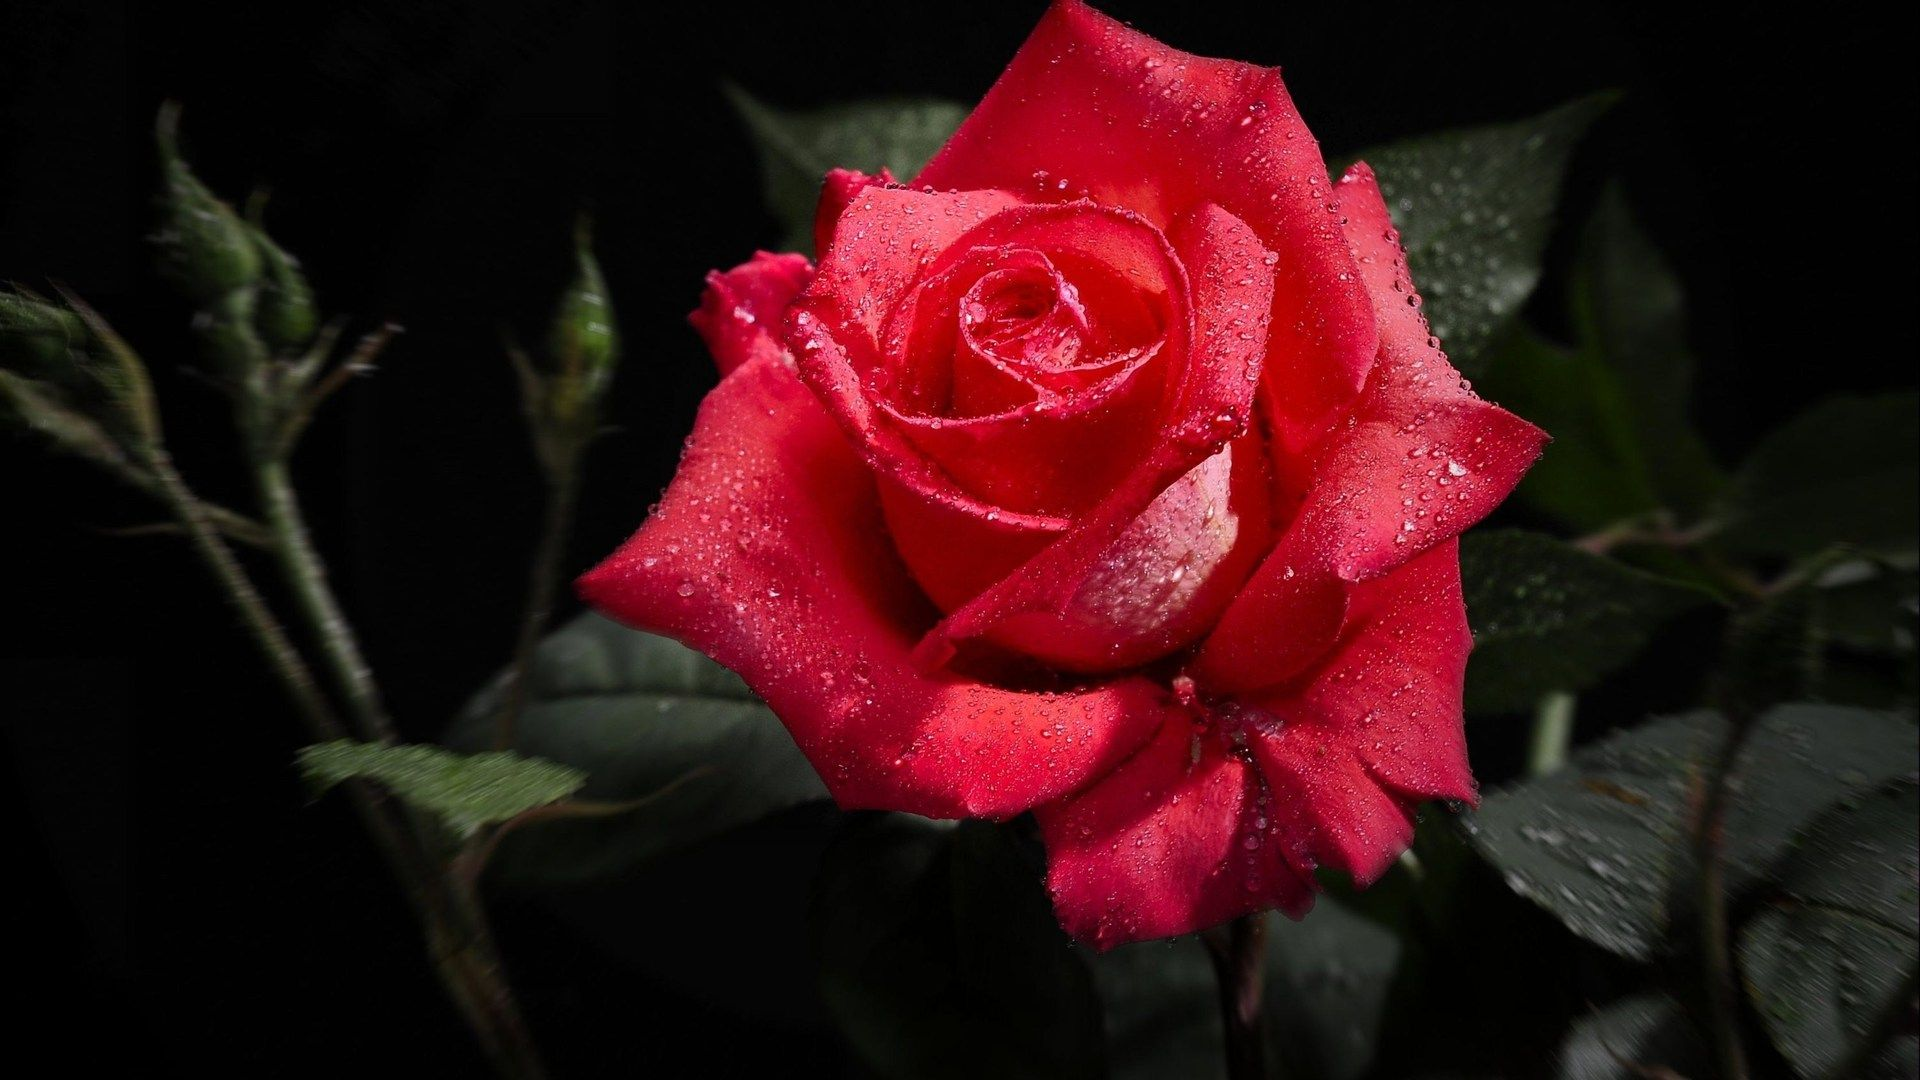 Perfect red rose 1080p hd wallpaper 1080p hd wallpapers - Red rose flower hd images ...